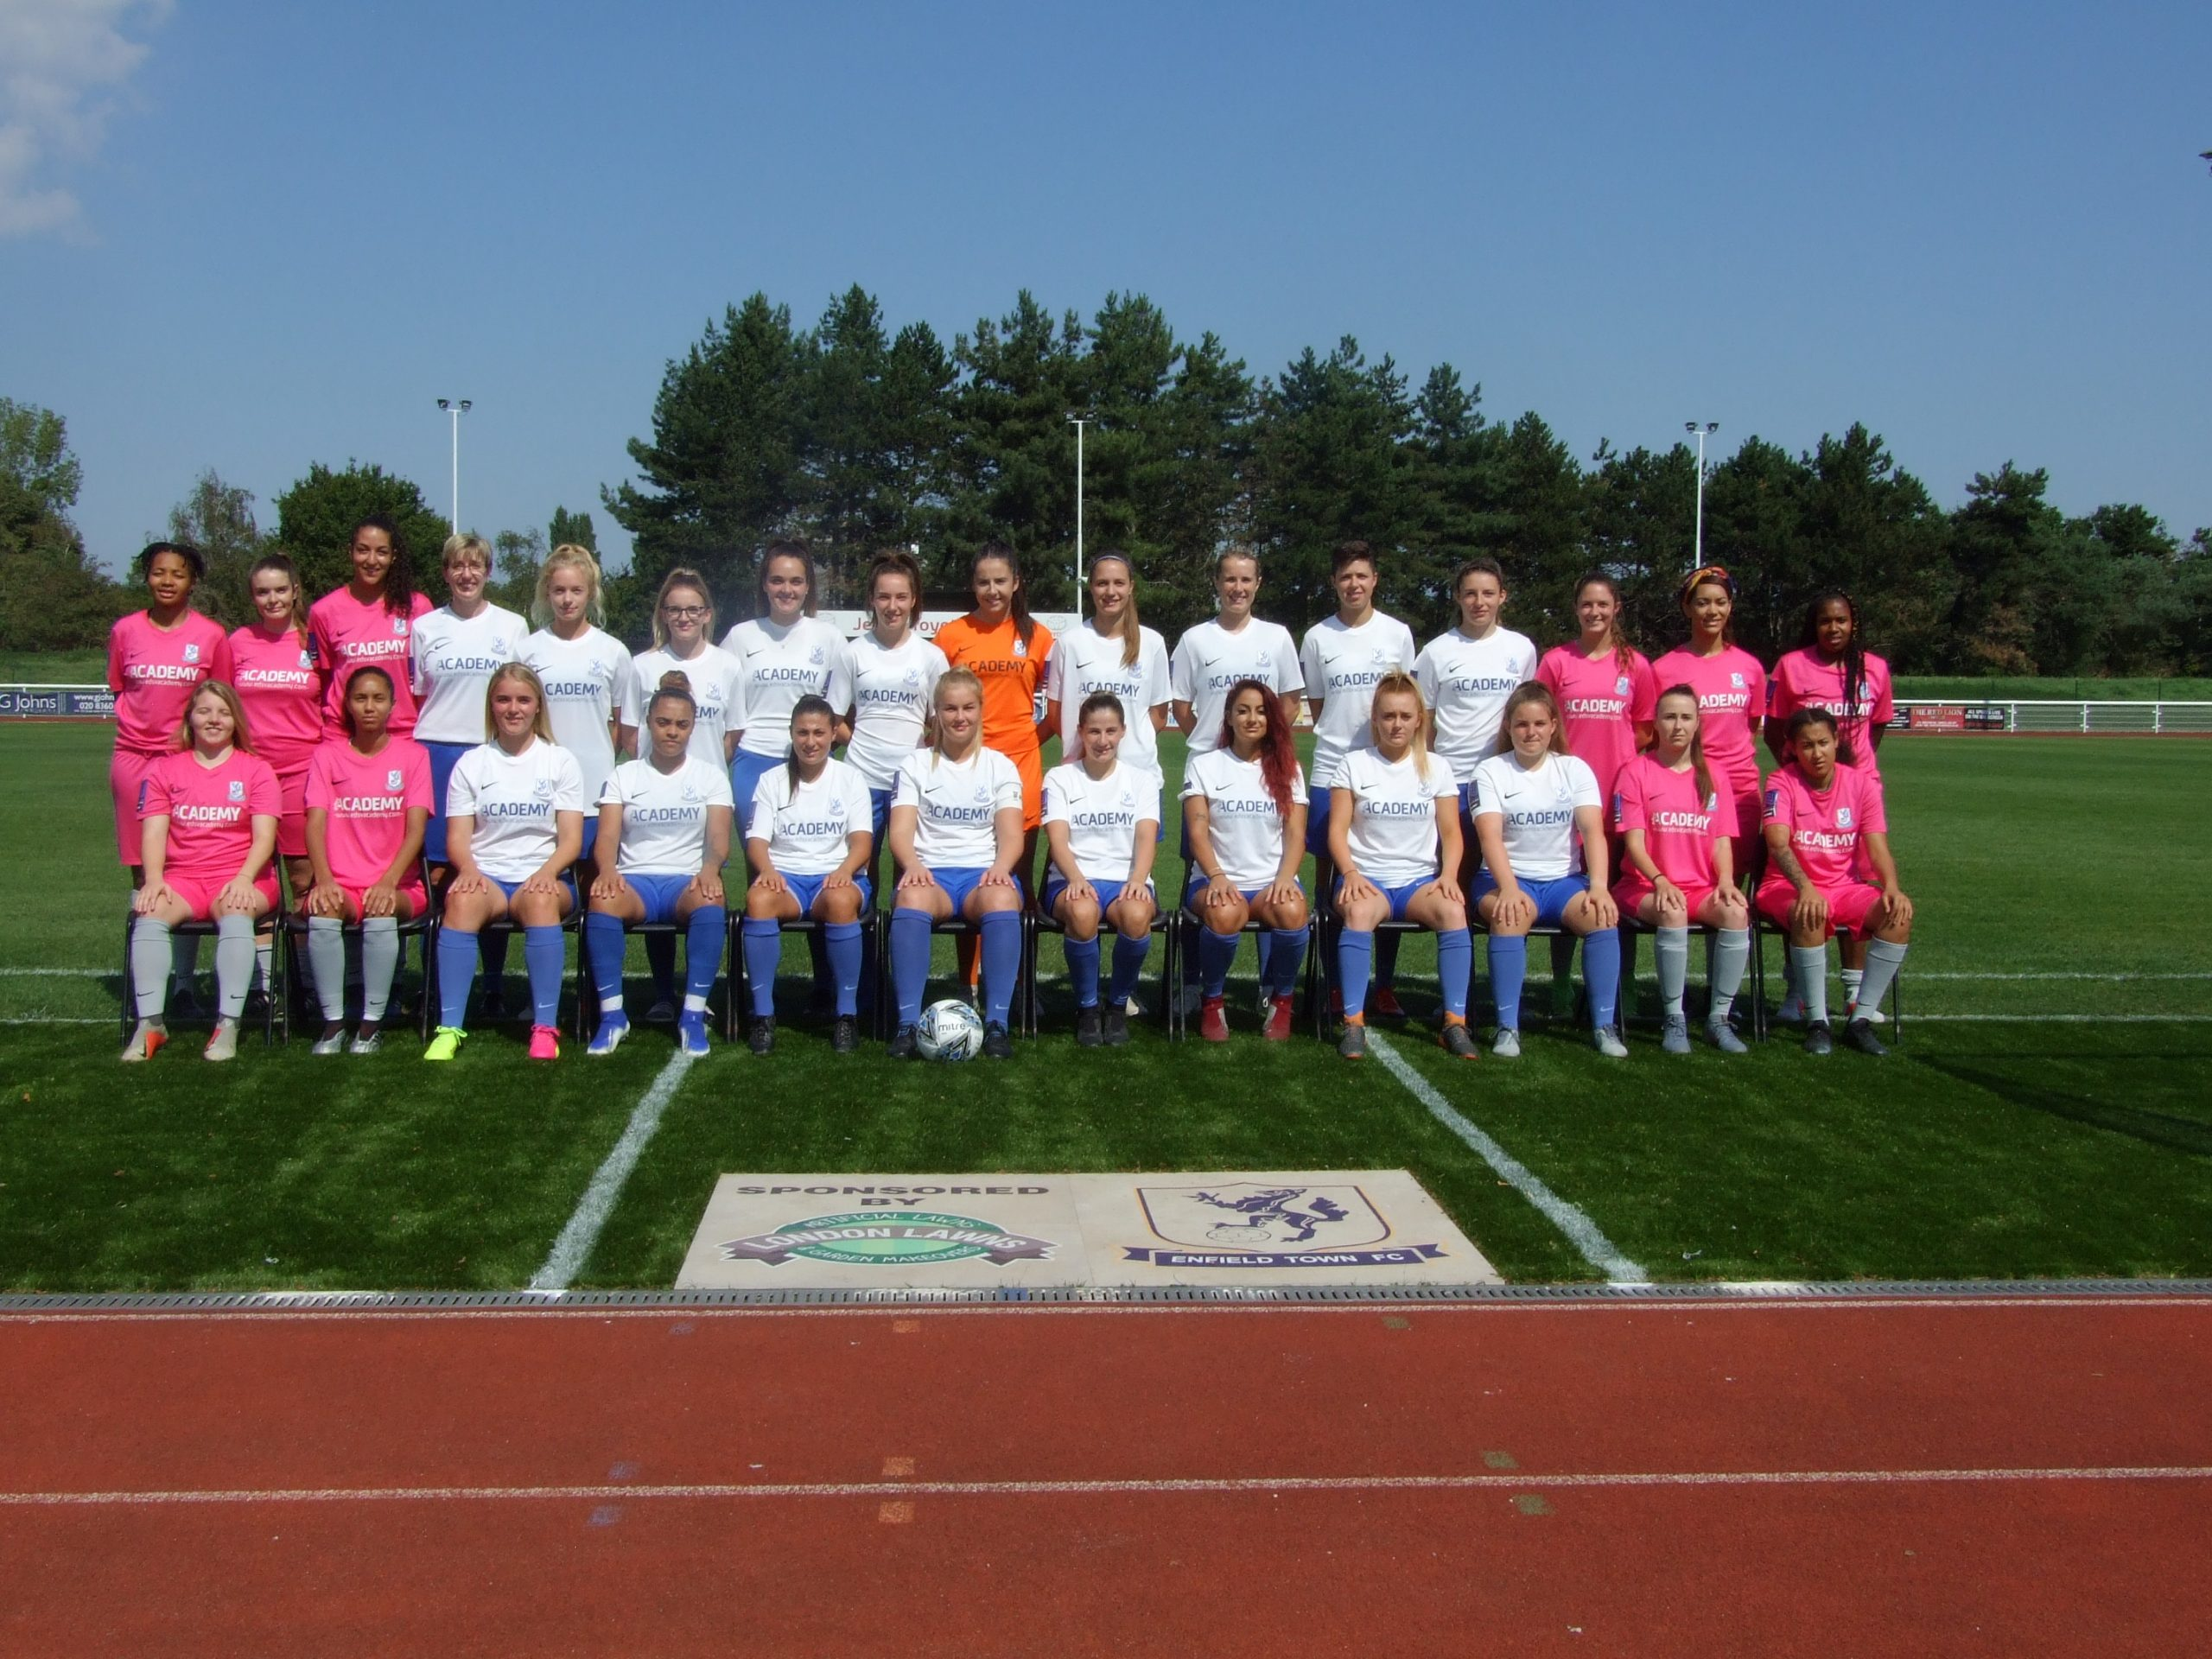 Enfield Town Ladies FC is one of the oldest women's football clubs in the country